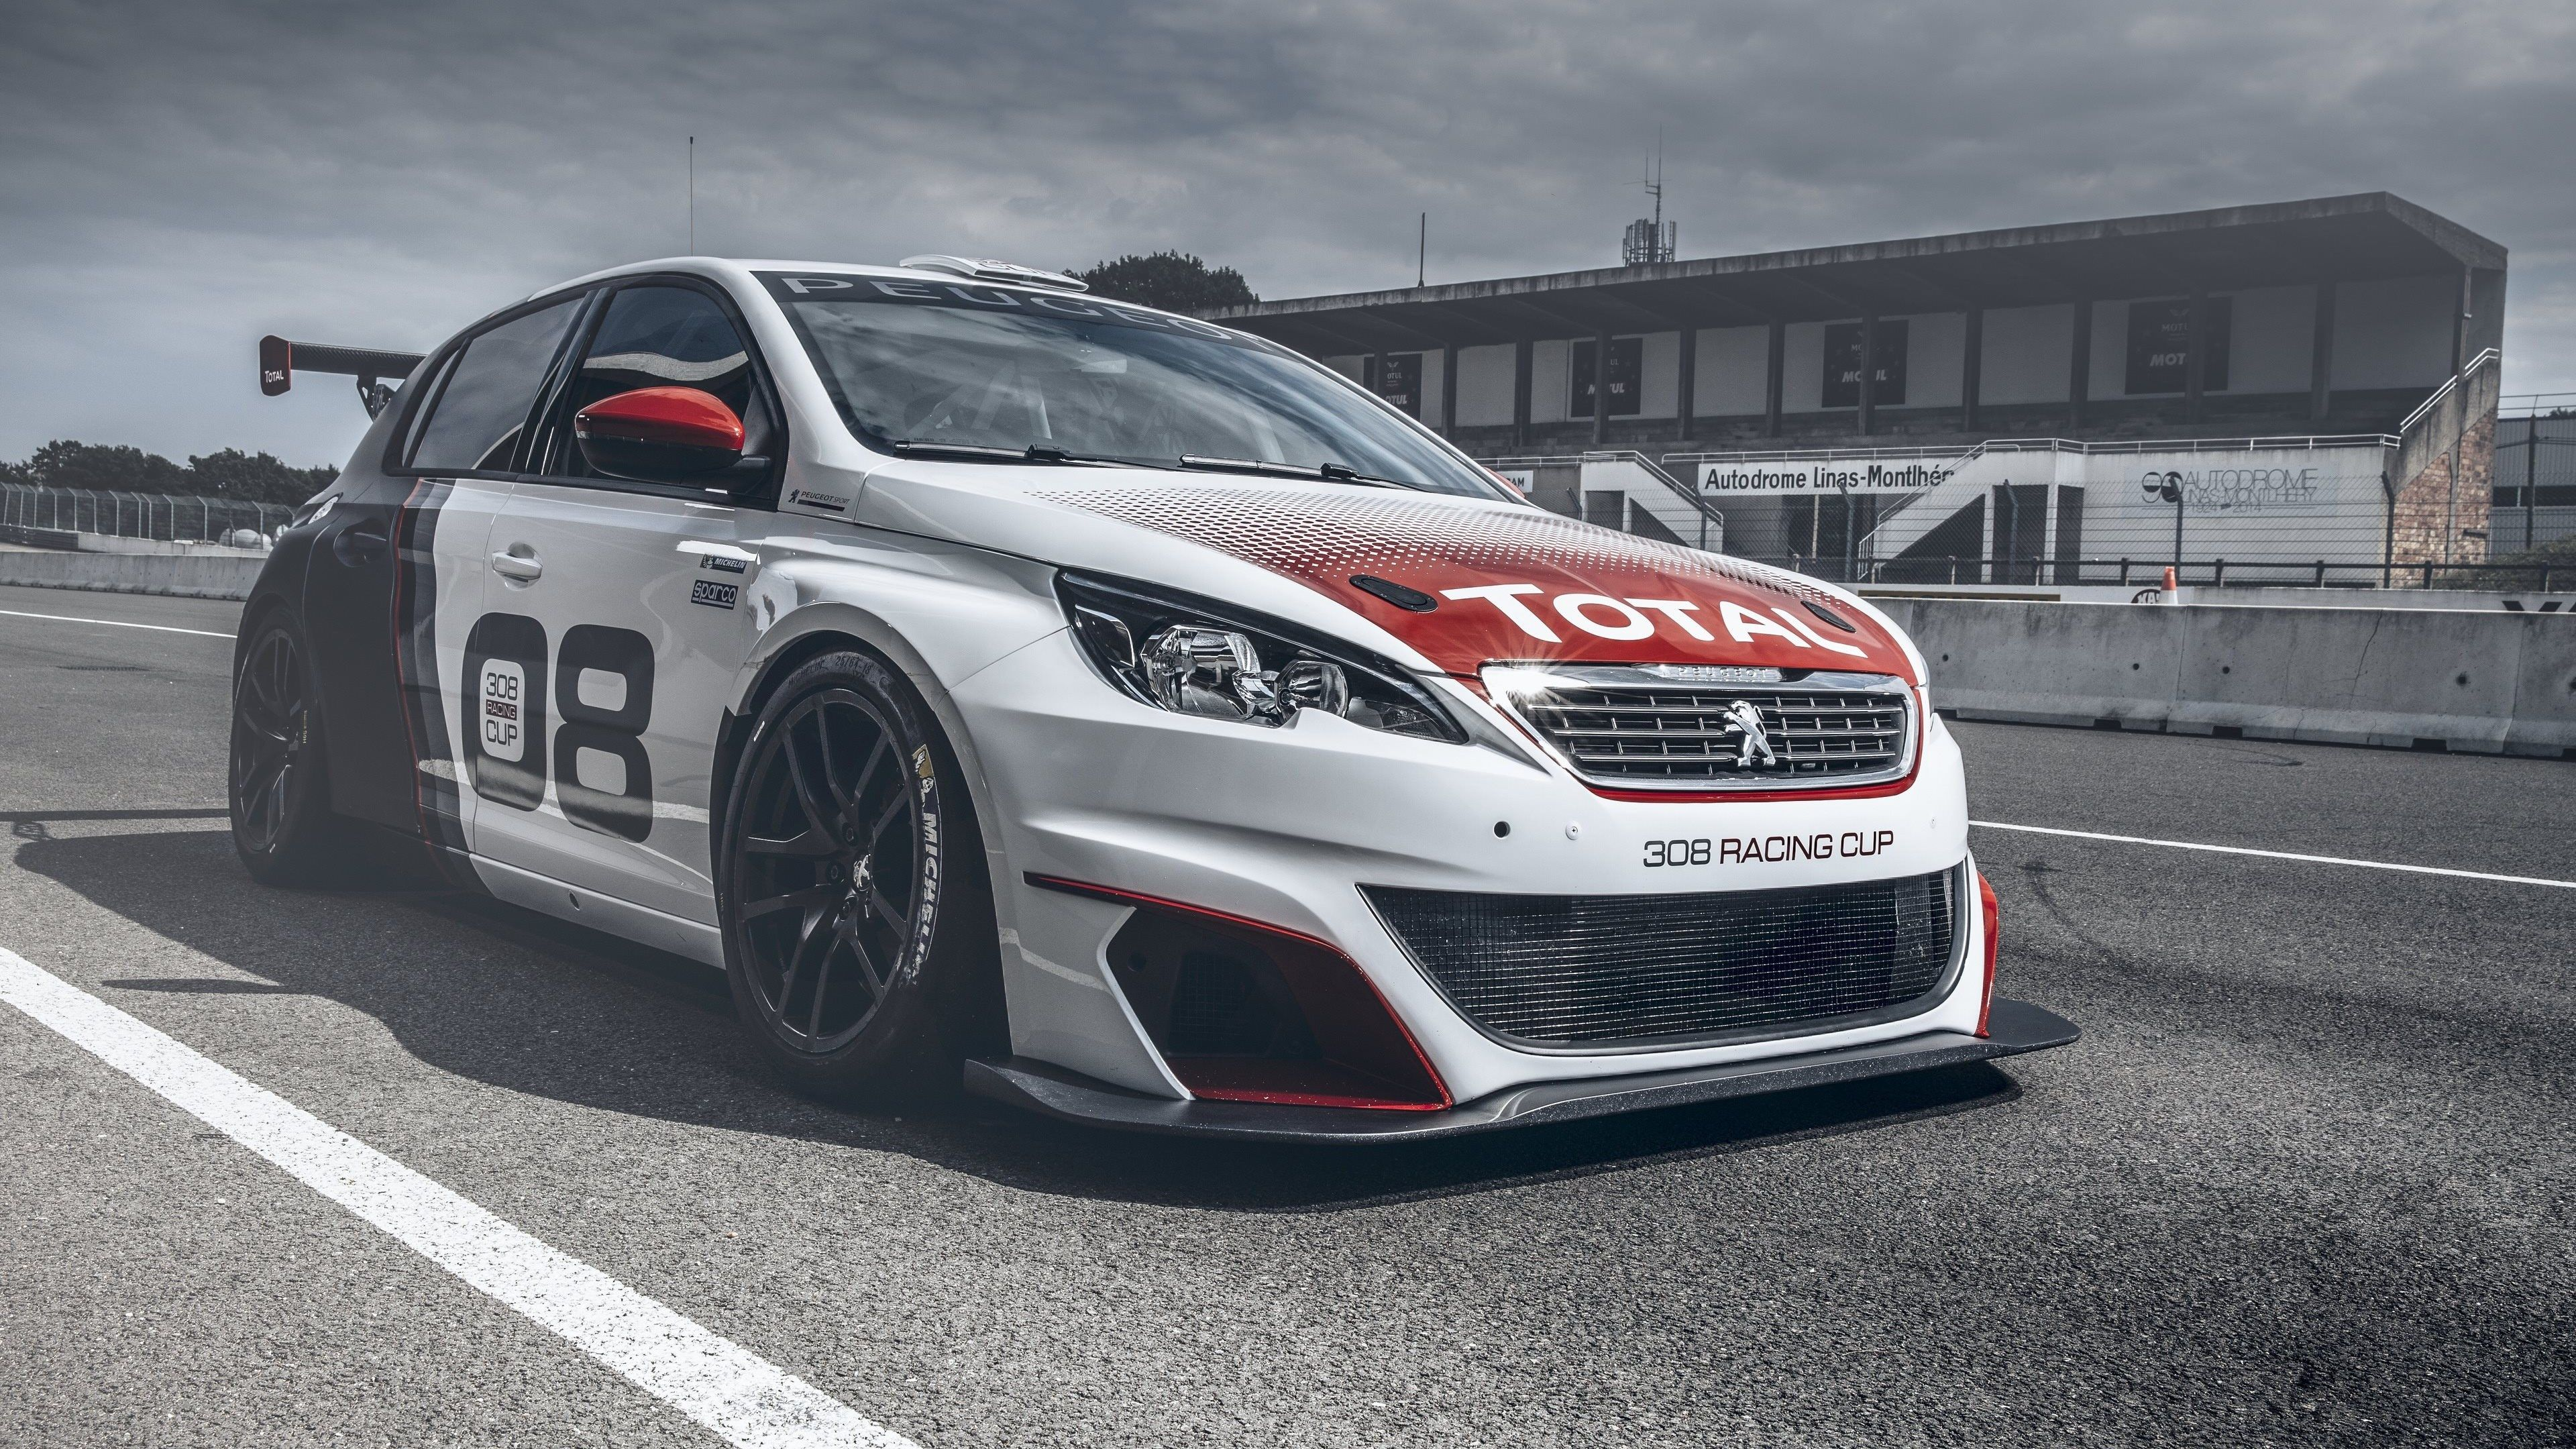 4k Windows Wallpaper Hd 3840x2160 Peugeot 308